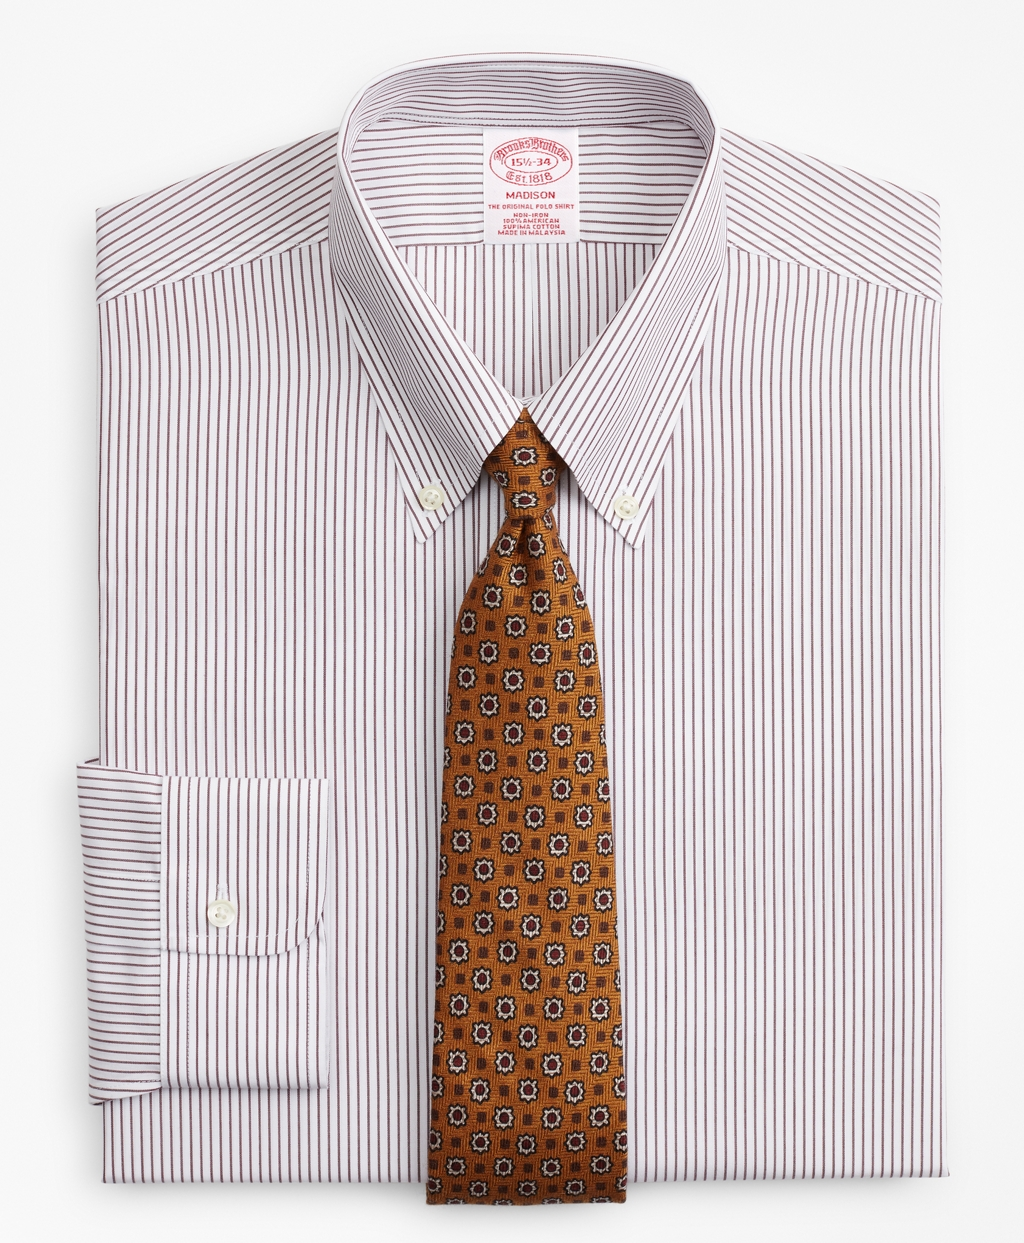 Mens Vintage Shirts – Casual, Dress, T-shirts, Polos Brooks Brothers Mens Regular Classic-Fit Dress Shirt Non-Iron Stripe $79.00 AT vintagedancer.com